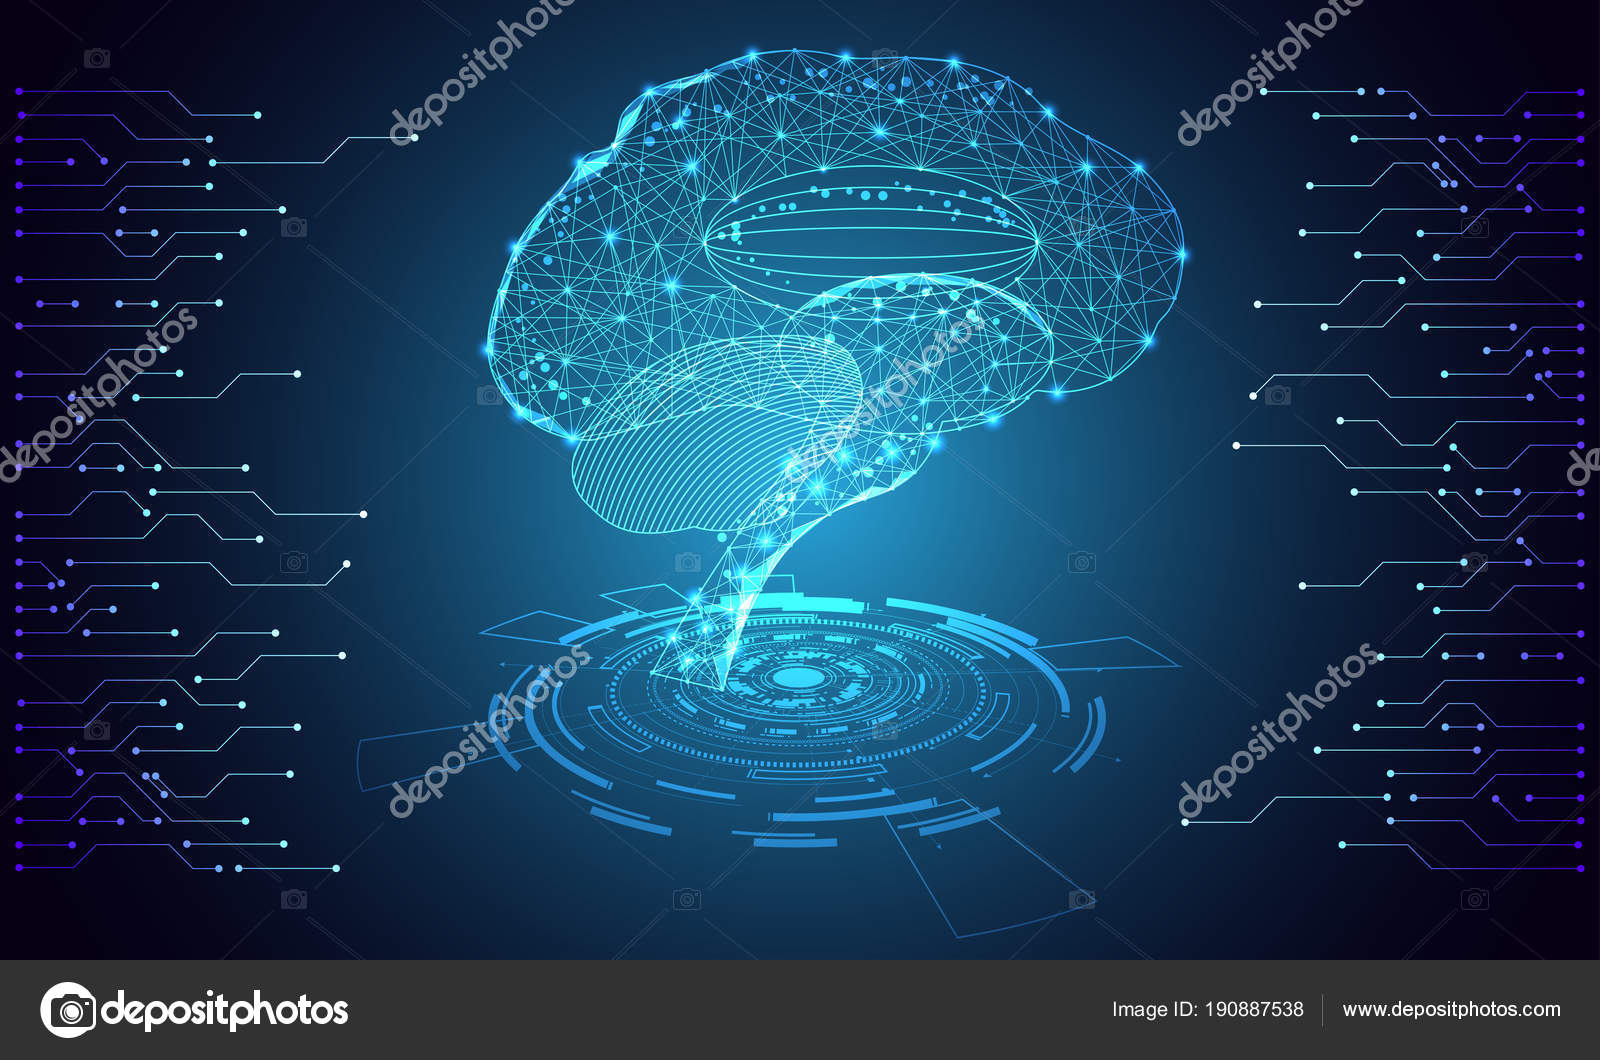 Abstract Technology Ui Futuristic Concept Brain Hud Interface Hologram Elements Of Digital Data Chart Communication Computing And Health Innovation On Hi